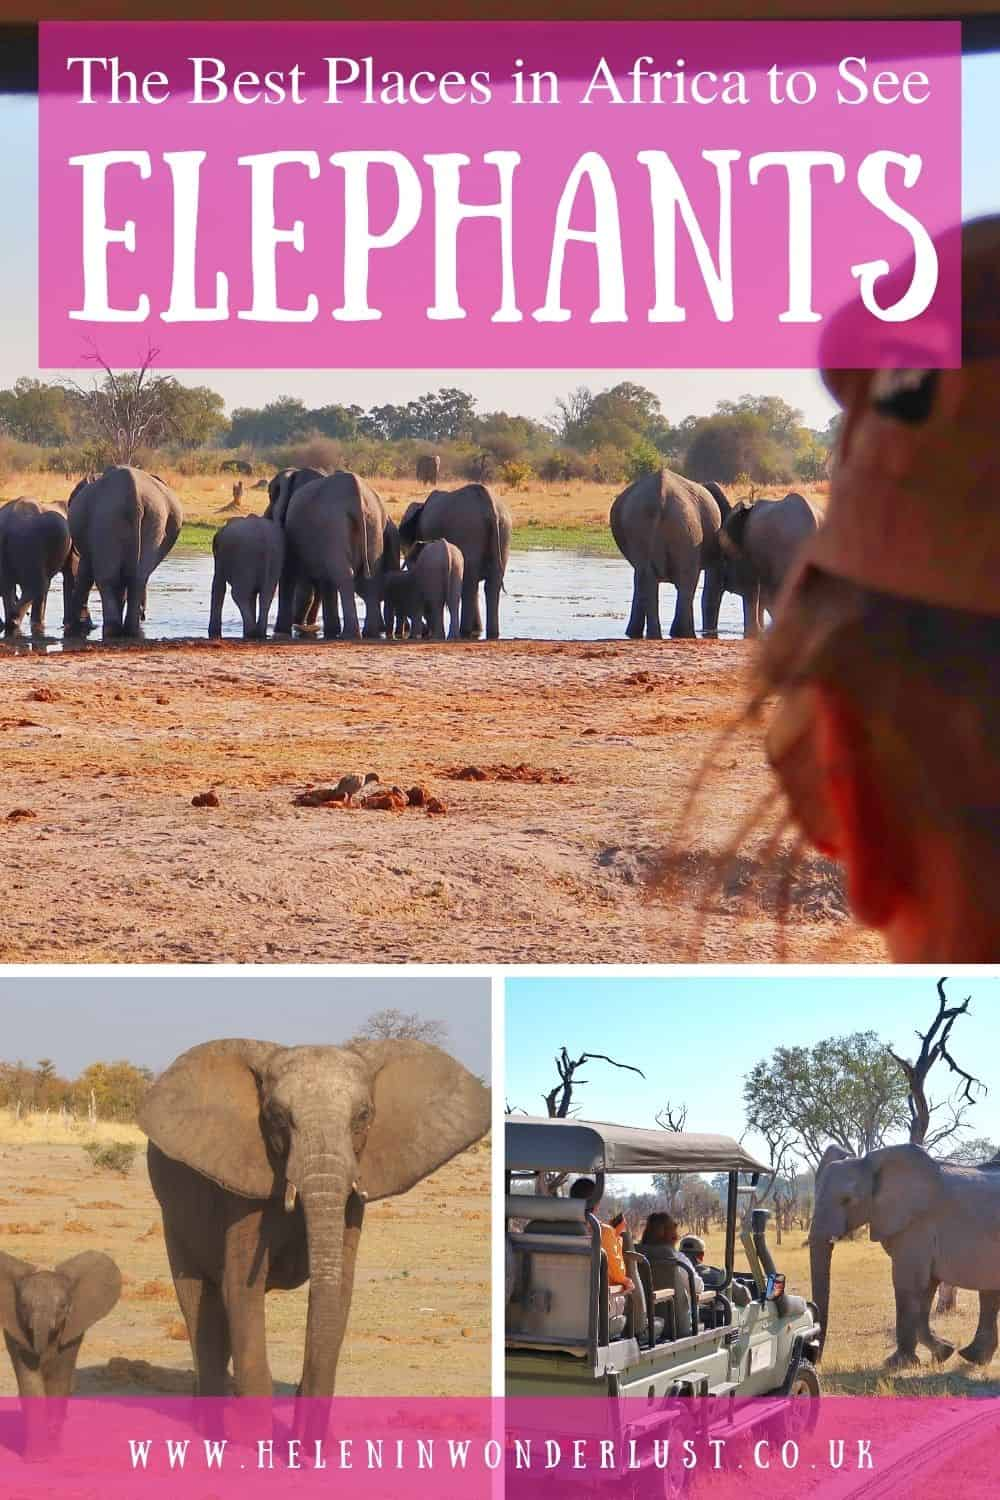 The Best Places in Africa to See Elephants